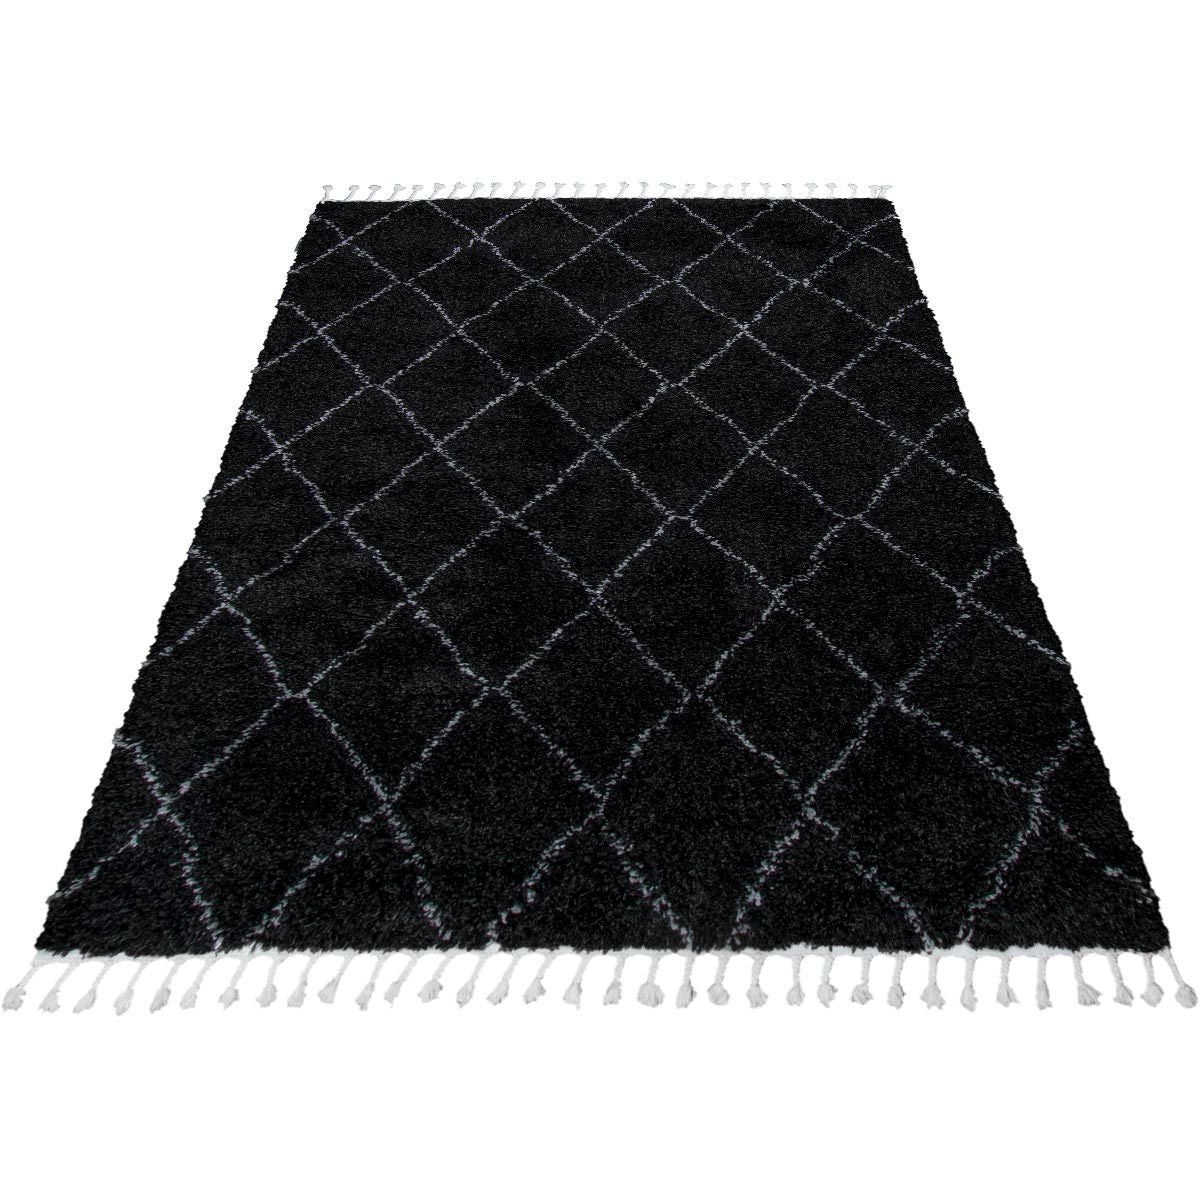 Casablanka Rug 04 Black/White 5